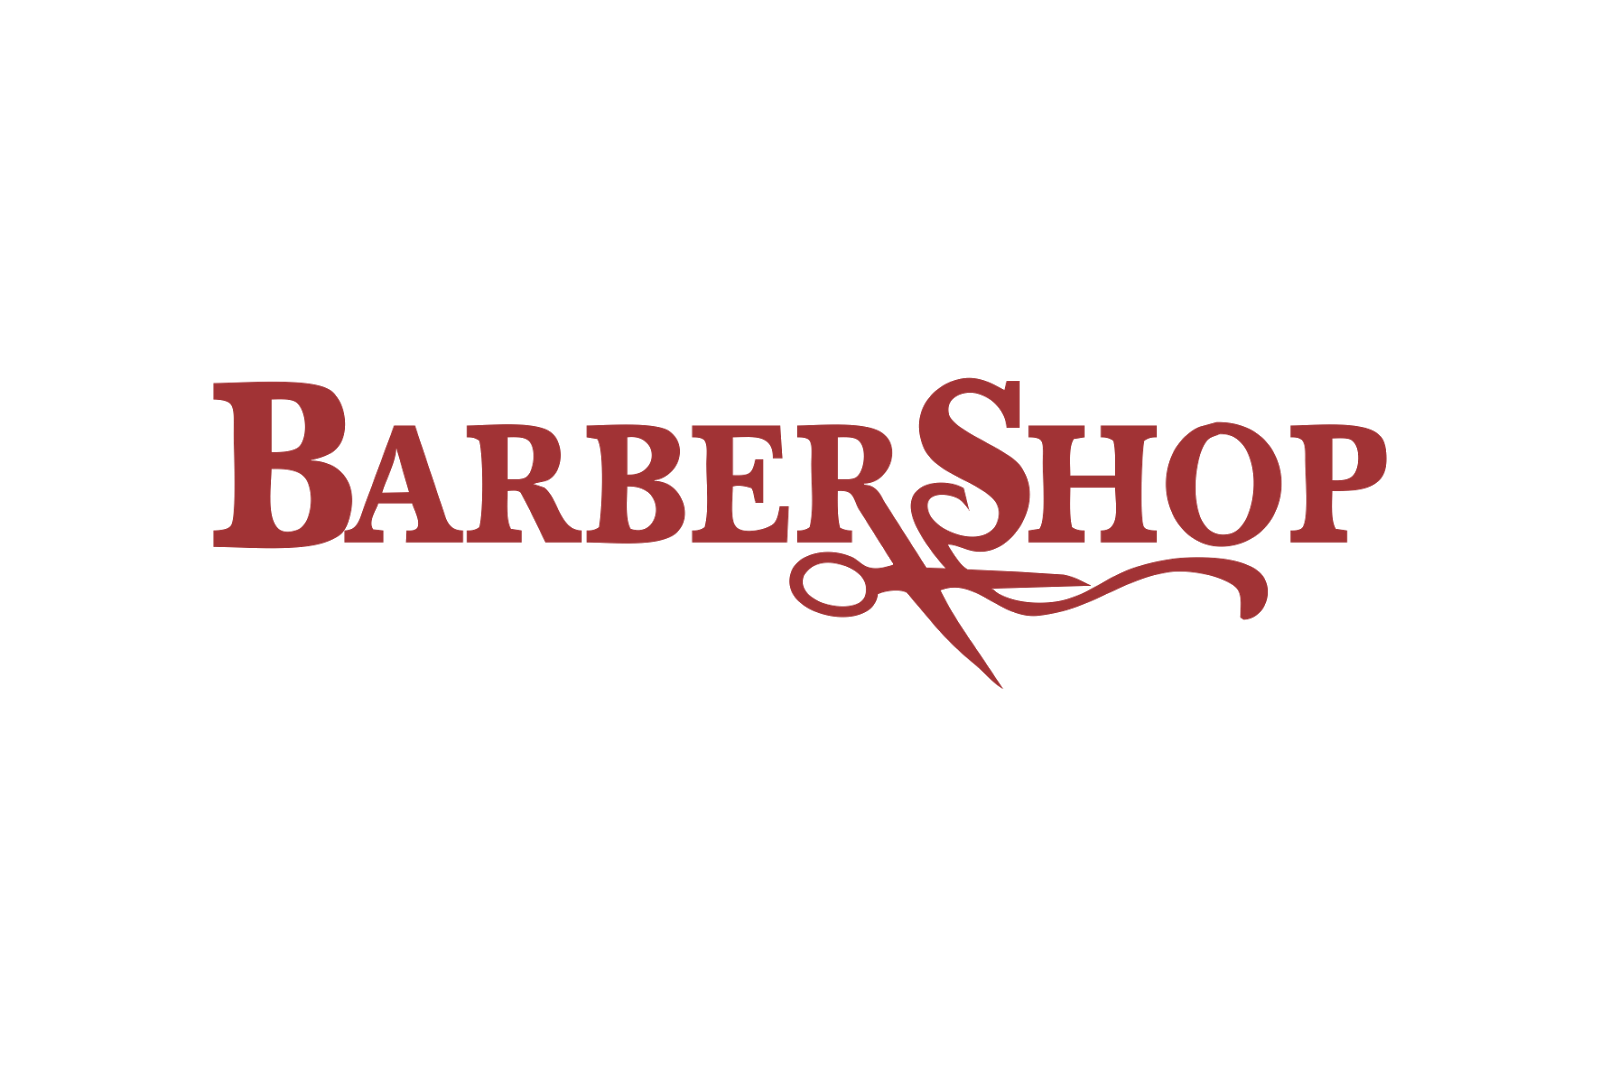 Barber Logos | Joy Studio Design Gallery - Best Design